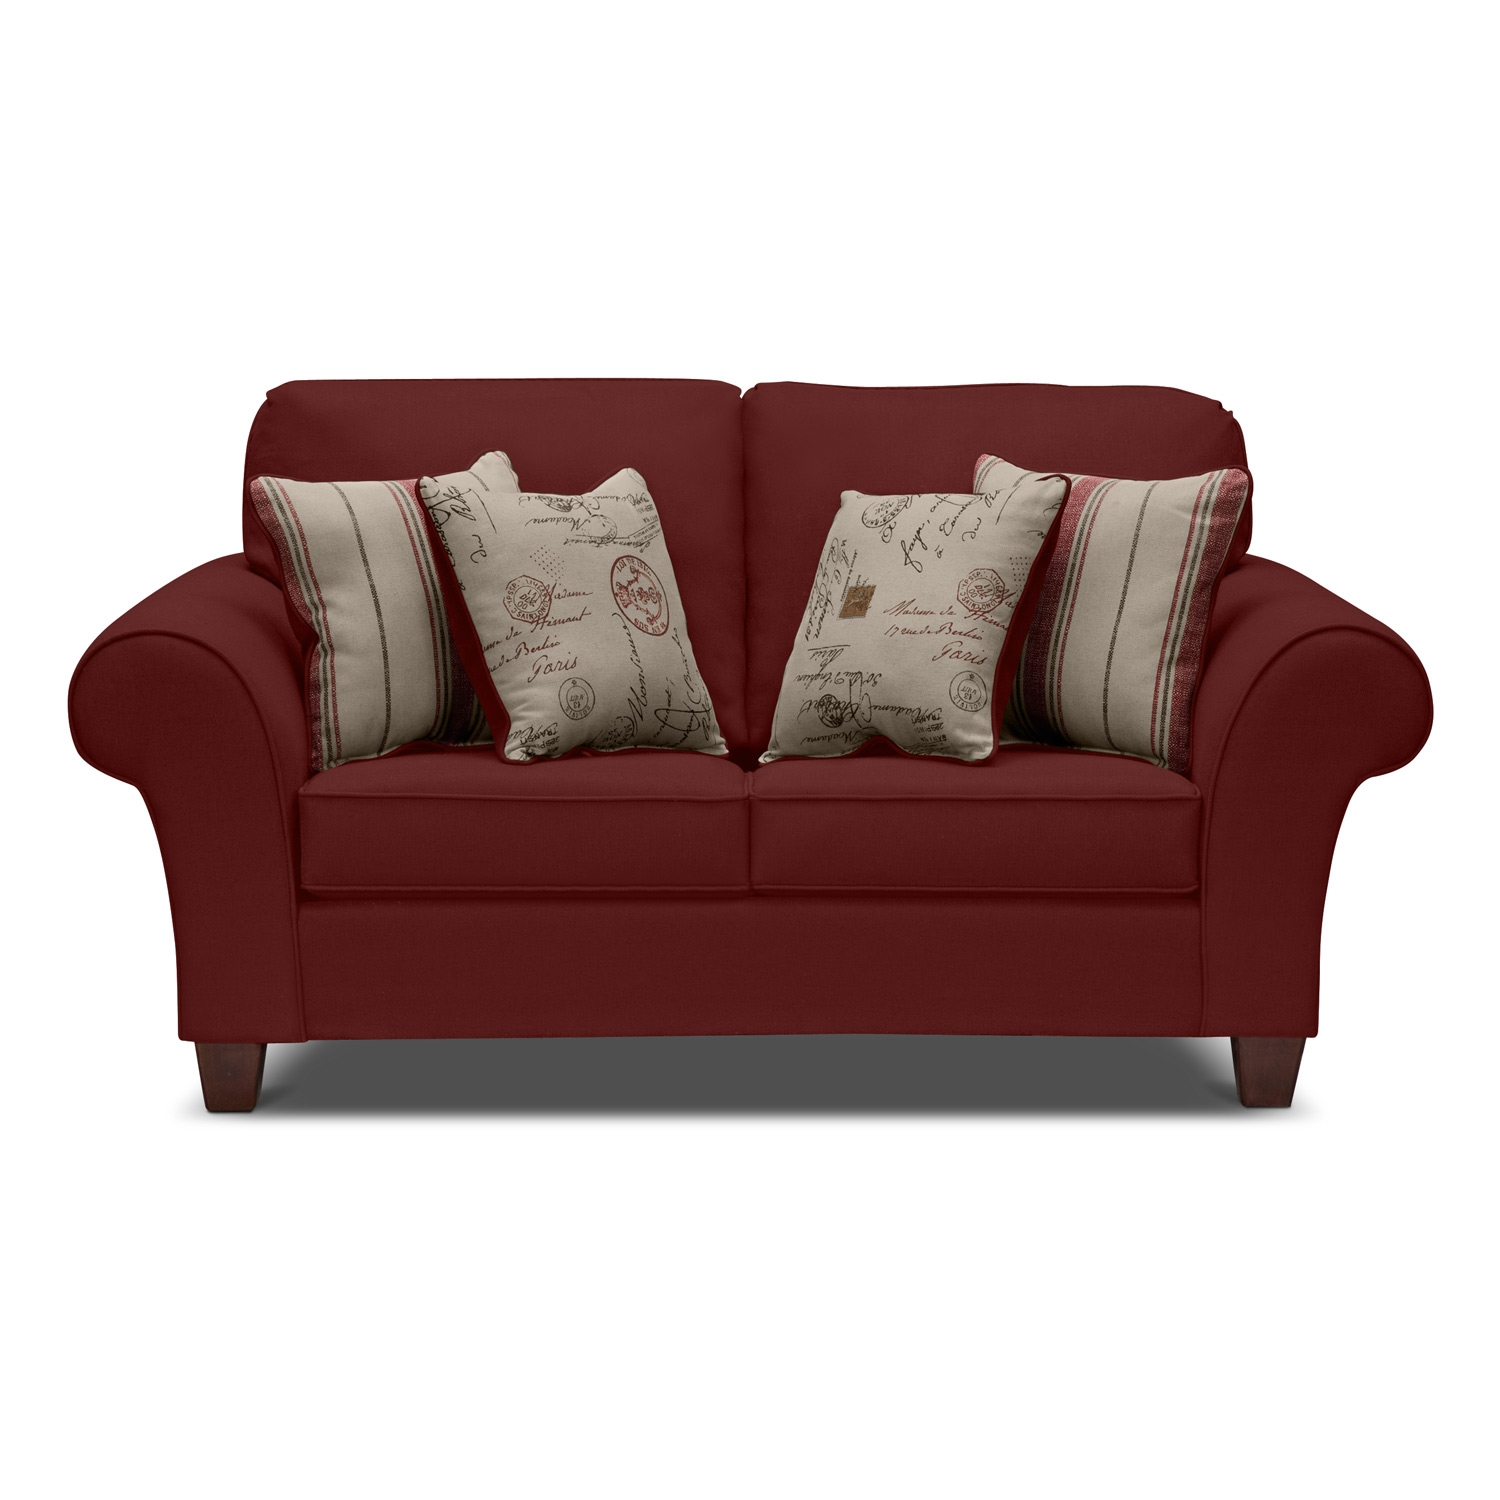 Image of: Red Color Twin Sleeper Sofa Chair